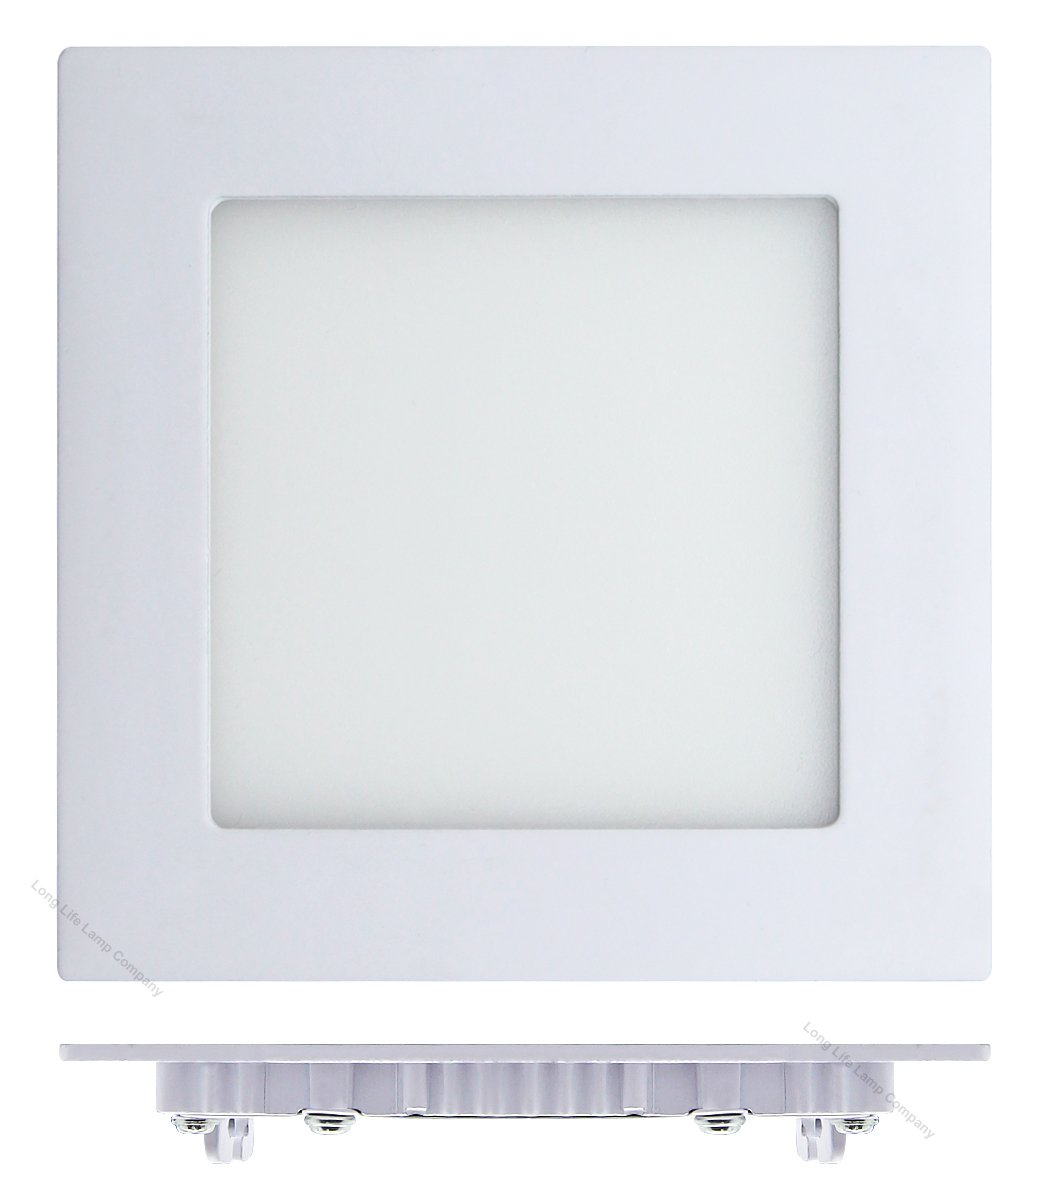 6W LED SQUARE Recessed Ceiling Flat Panel Down Light Ultra